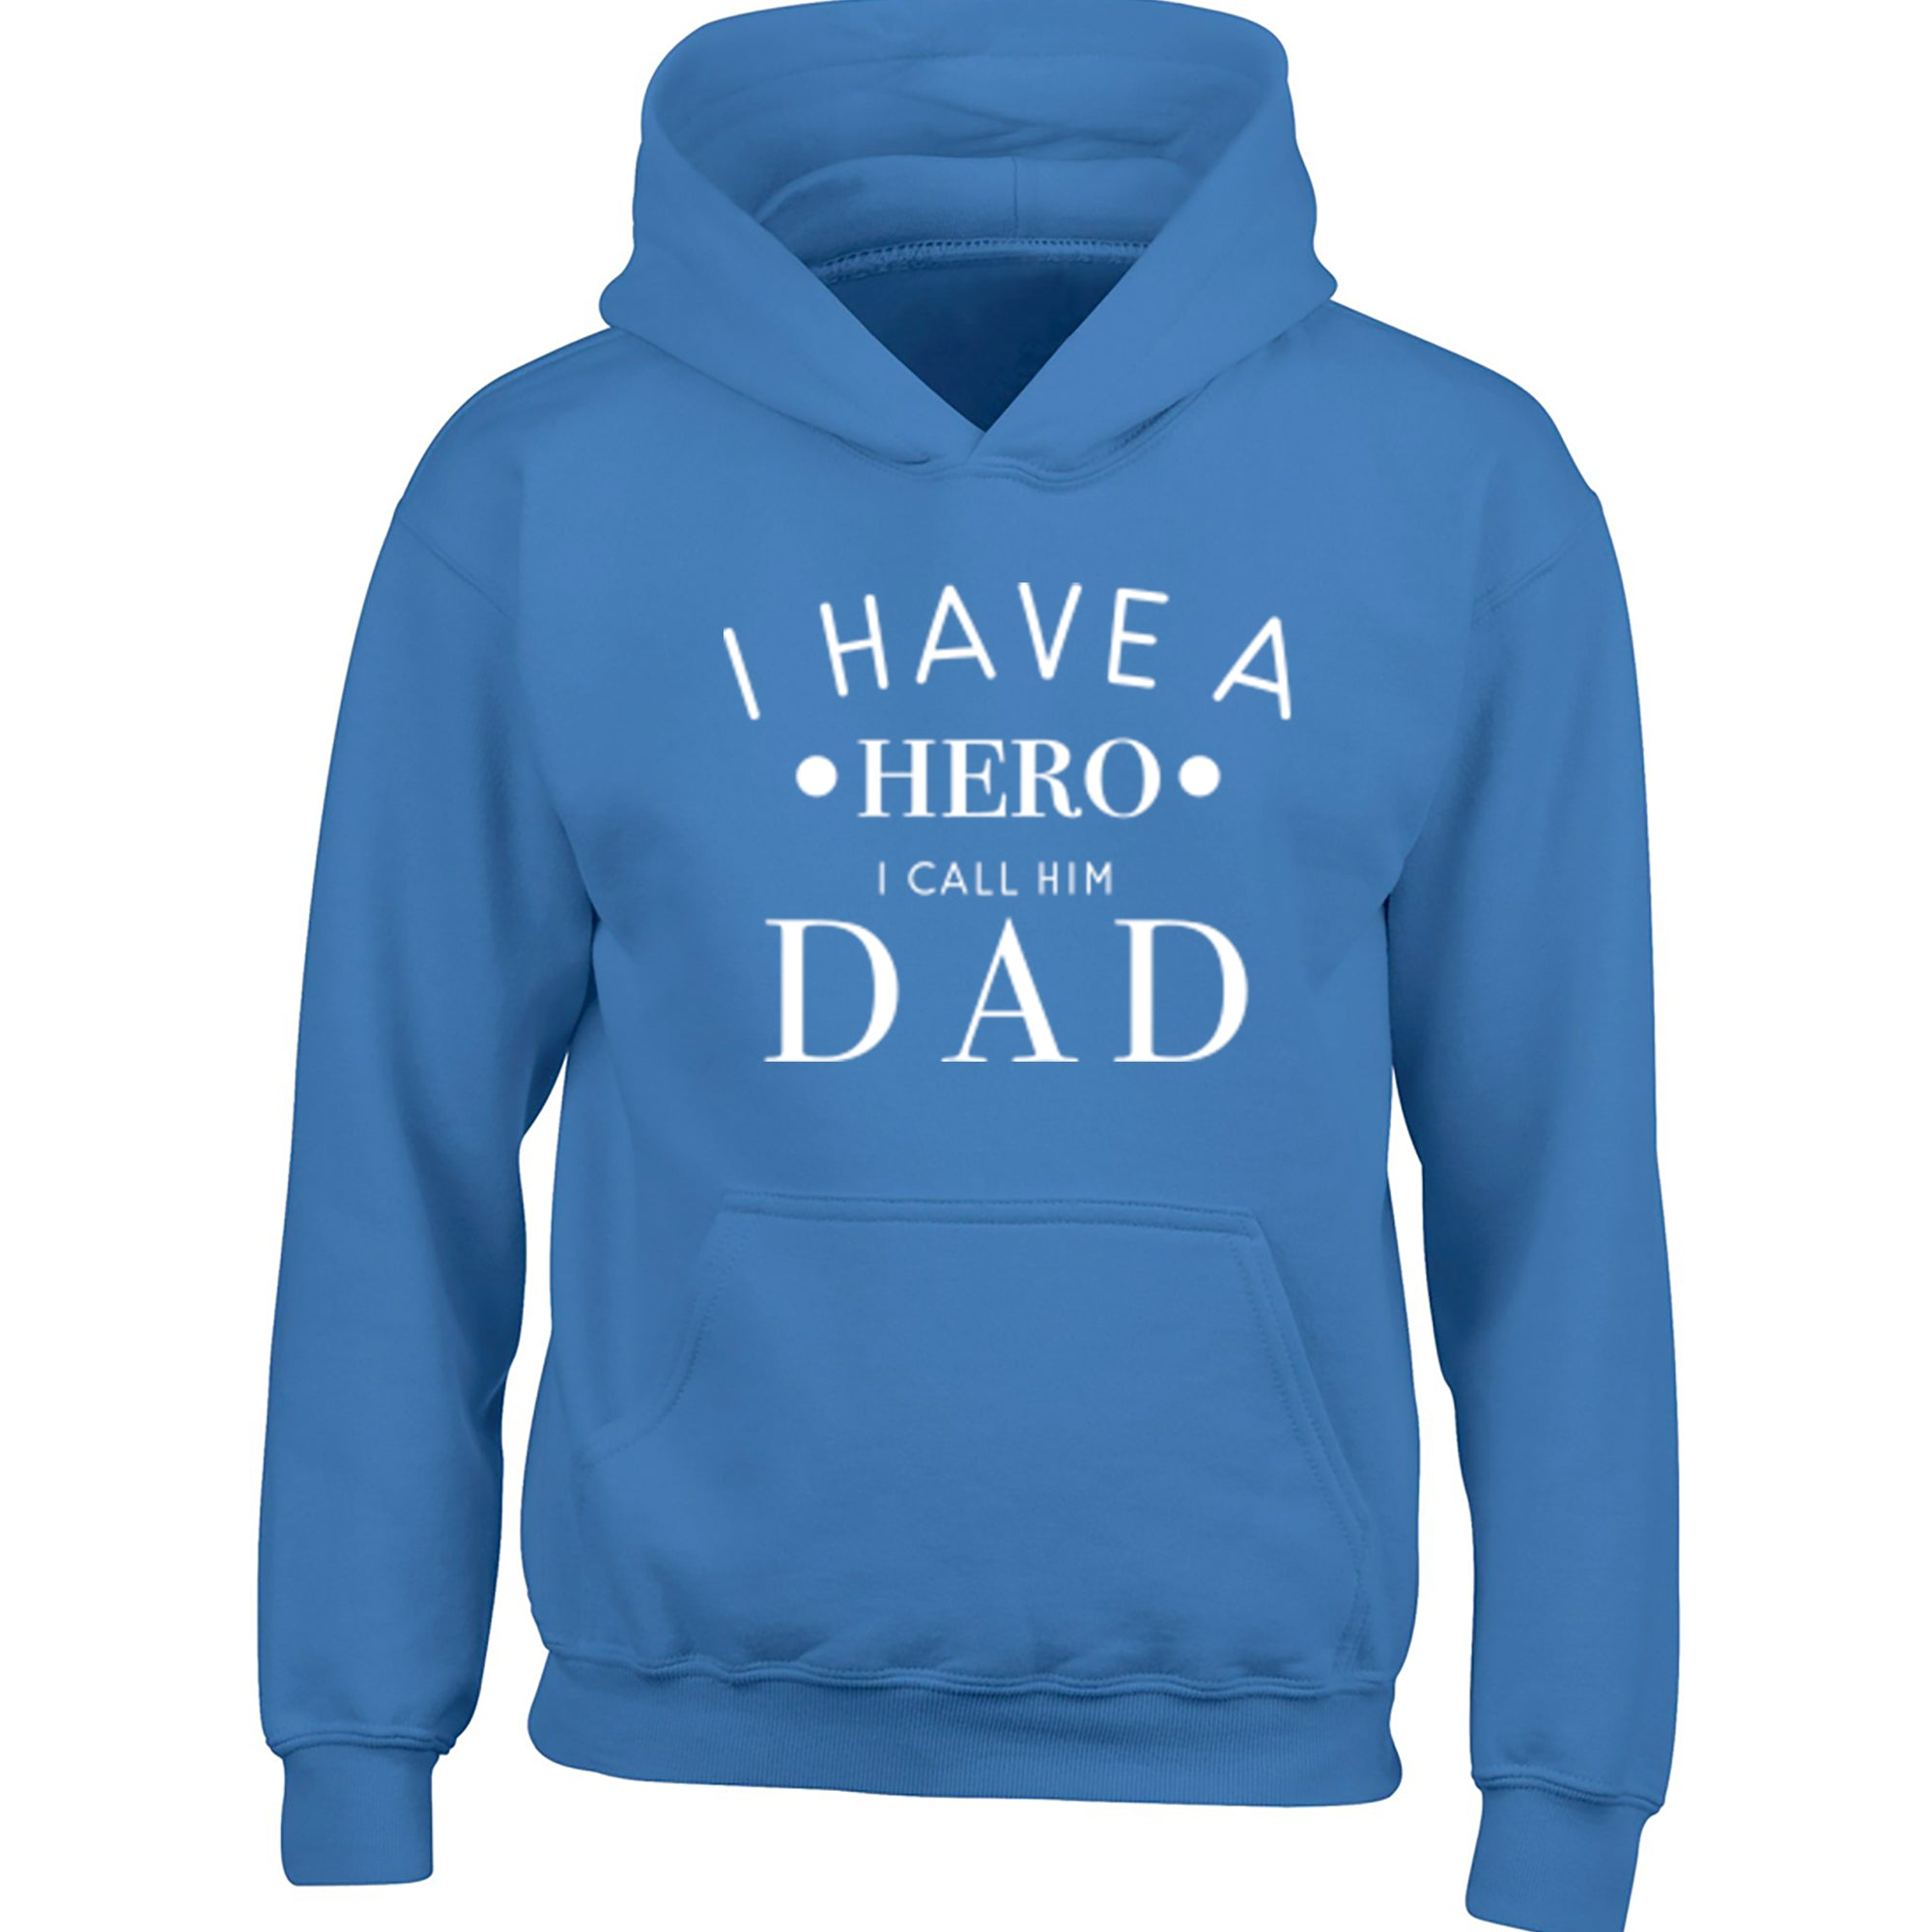 I Have A Hero I Call Him Dad Childrens Ages 3/4-12/14 Unisex Hoodie S0720 - Illustrated Identity Ltd.